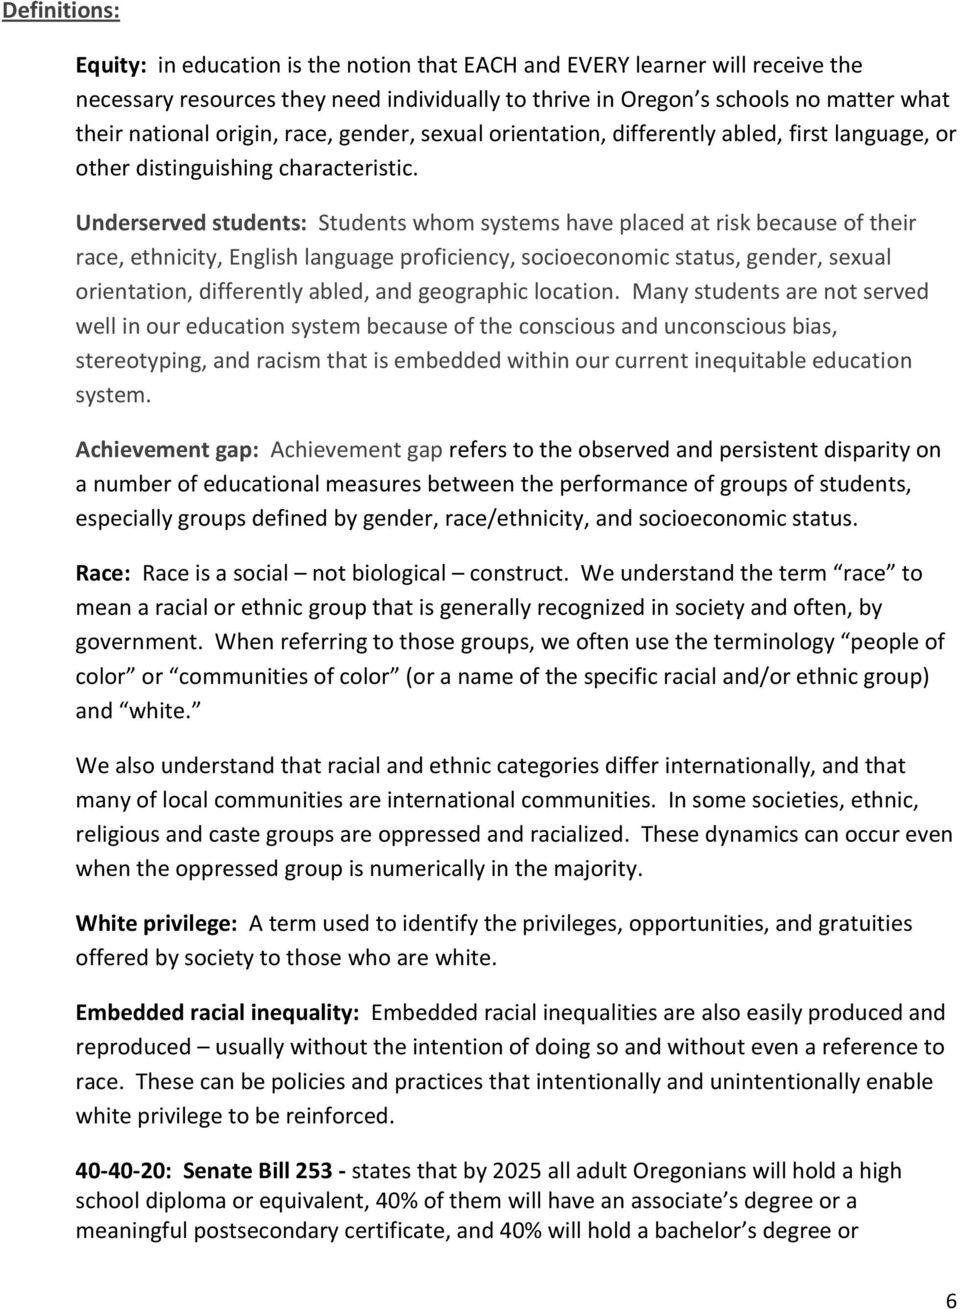 Underserved students: Students whom systems have placed at risk because of their race, ethnicity, English language proficiency, socioeconomic status, gender, sexual orientation, differently abled,